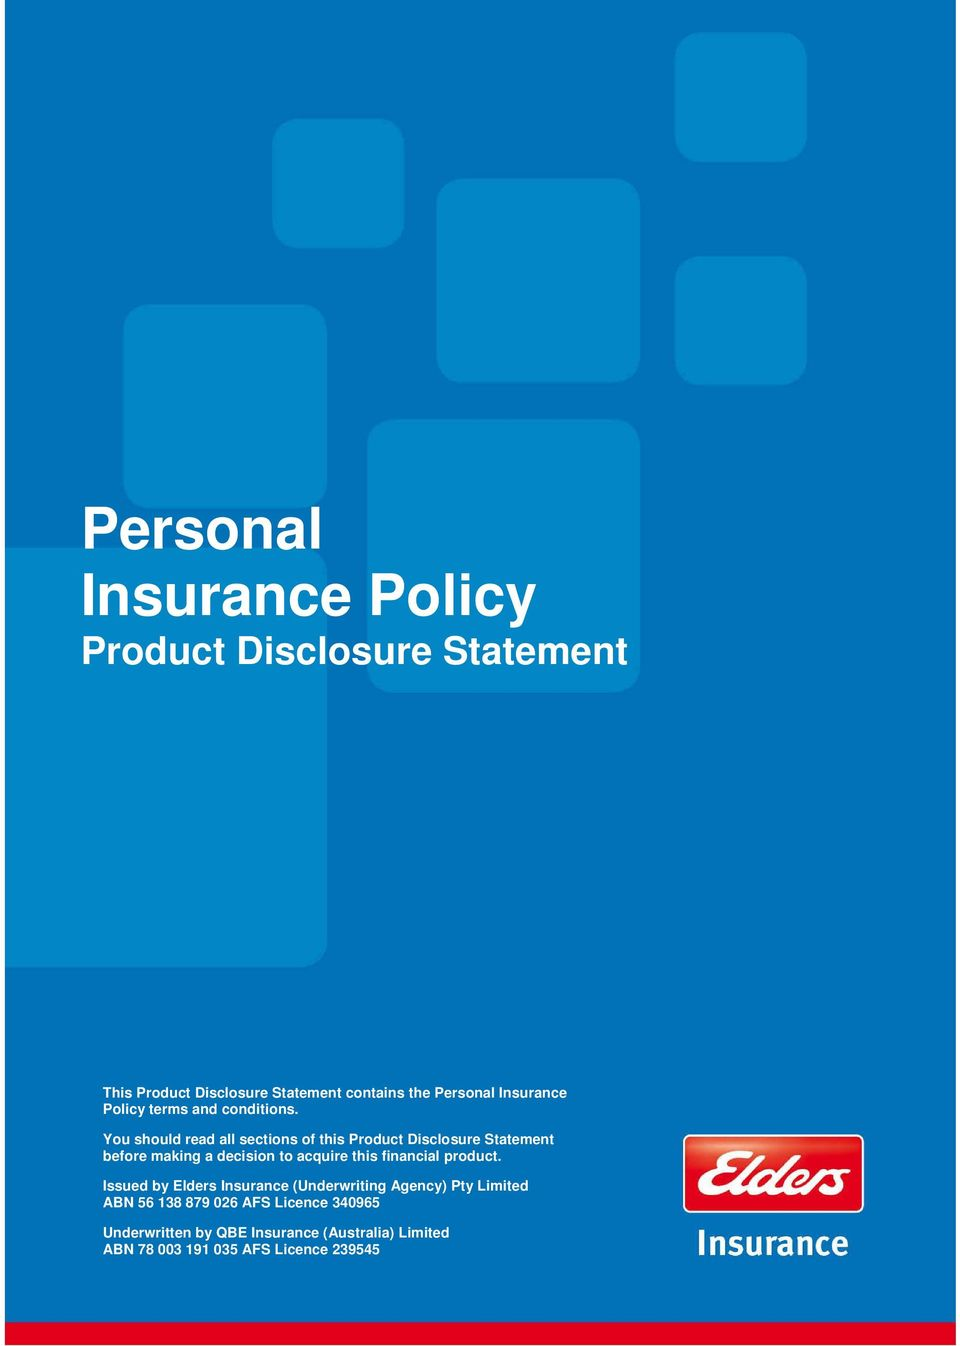 You should read all sections of this Product Disclosure Statement before making a decision to acquire this